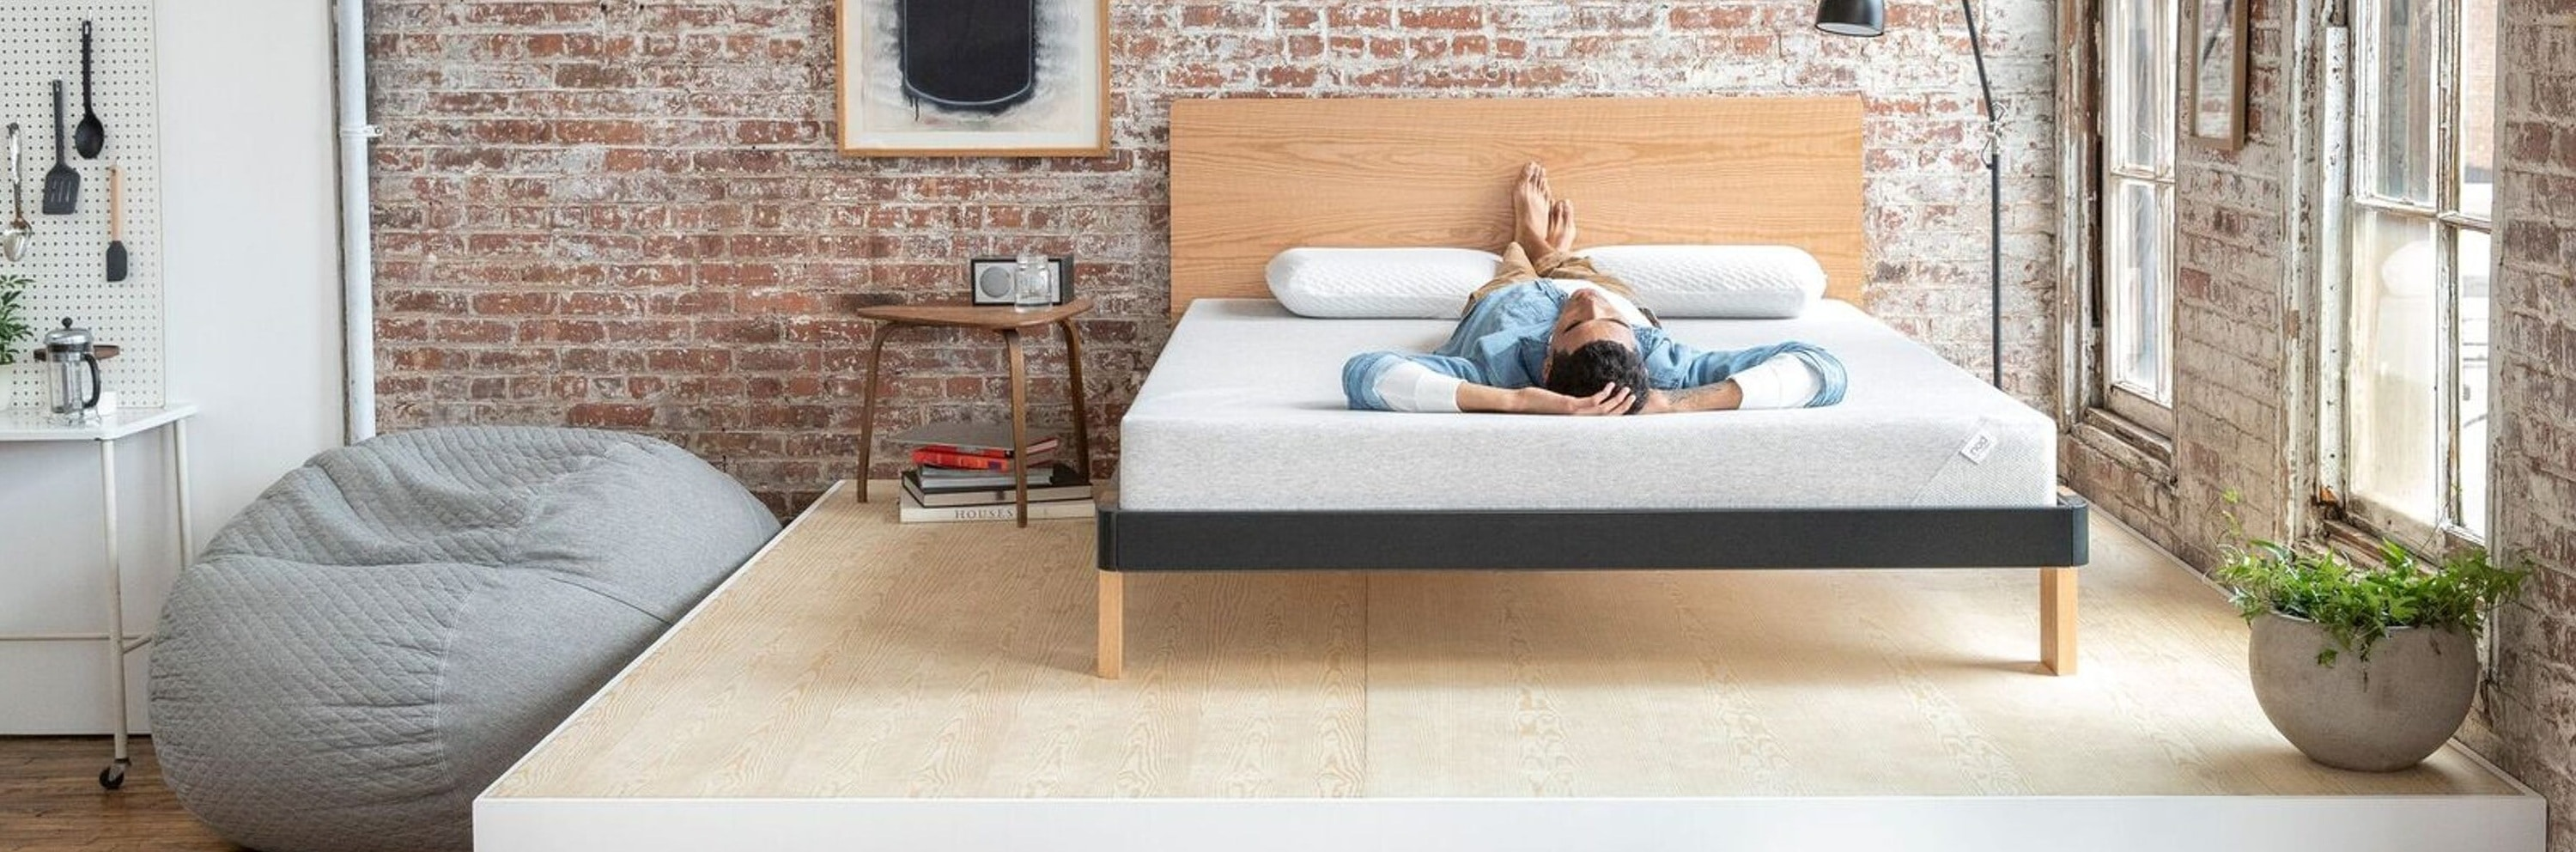 Best Budget Mattresses Reviewed in Detail